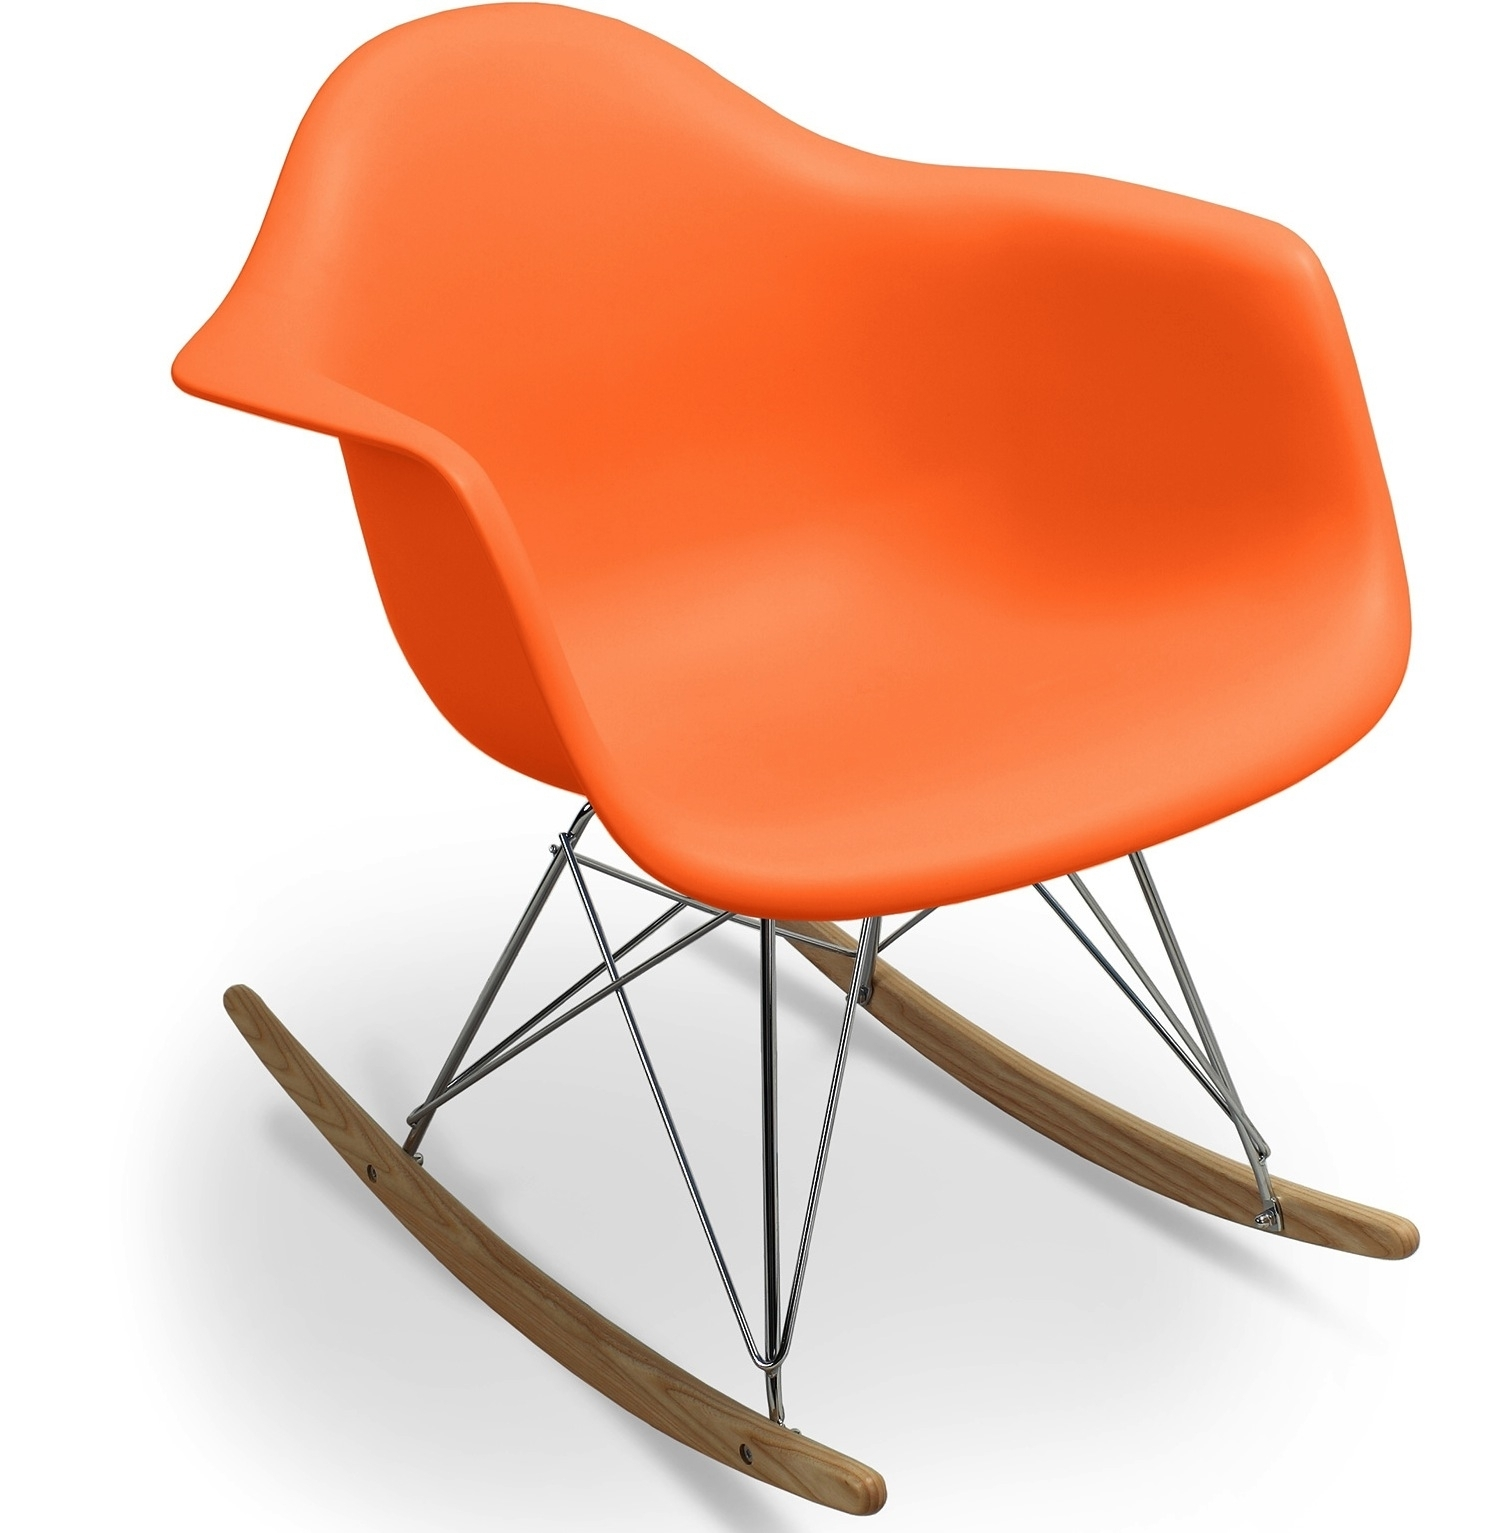 fauteuil bascule orange mat inspir e charles eames. Black Bedroom Furniture Sets. Home Design Ideas